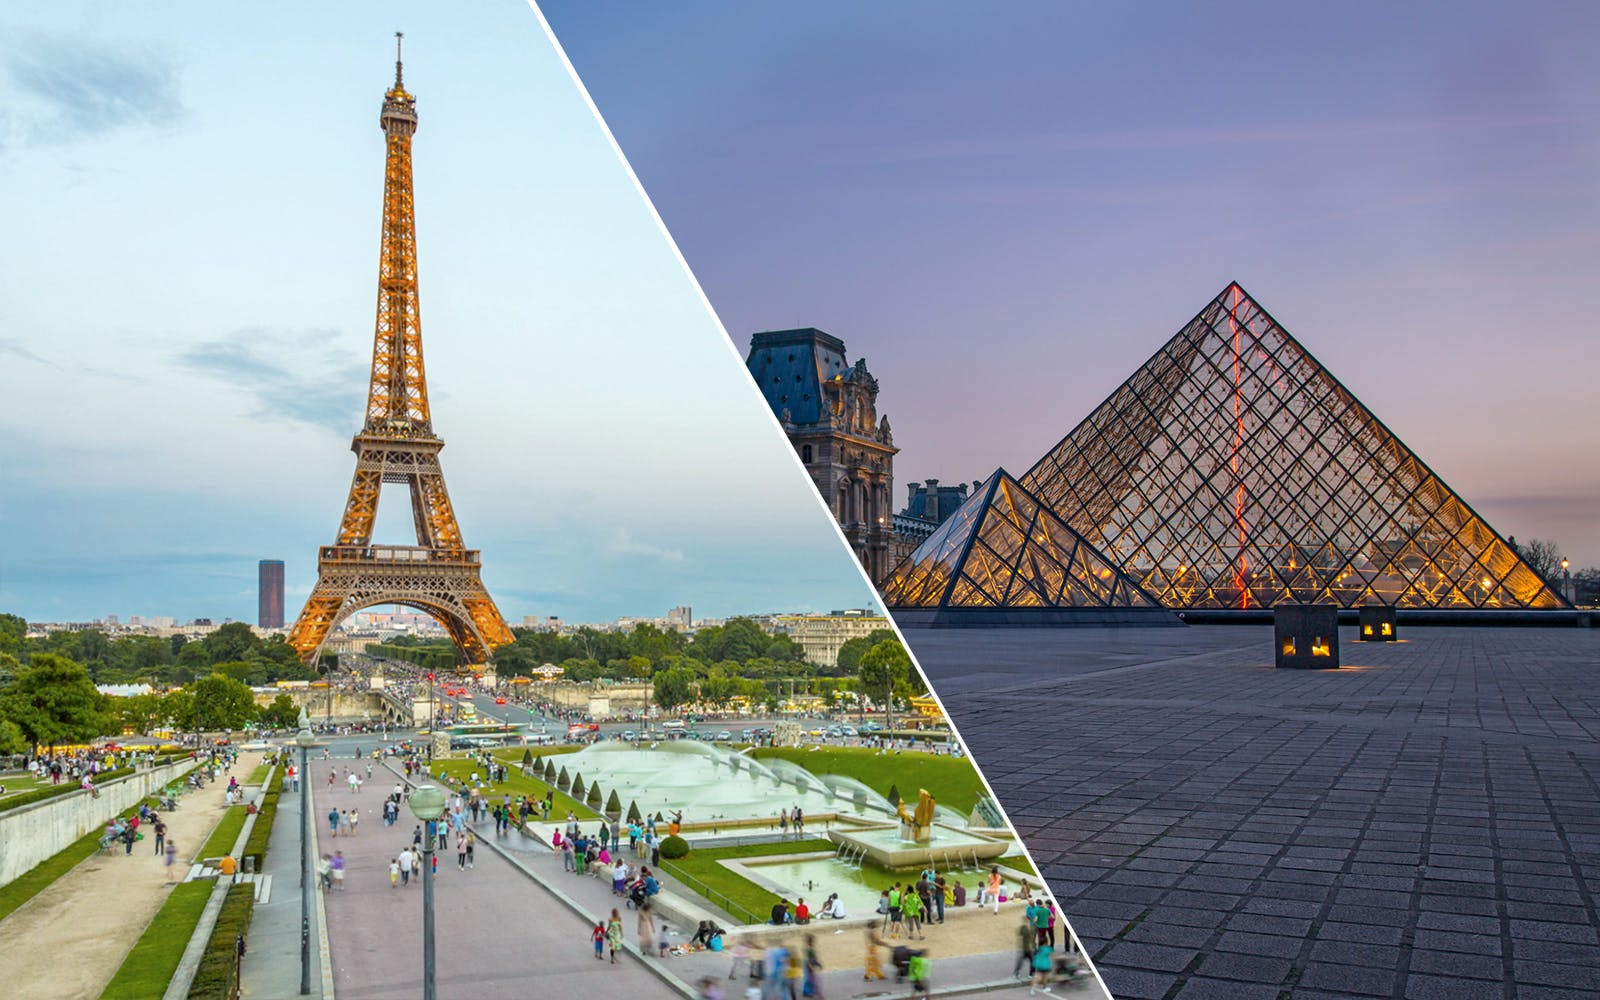 Eiffel Tower, Seine Cruise and Louvre Dedicated Entry Tickets